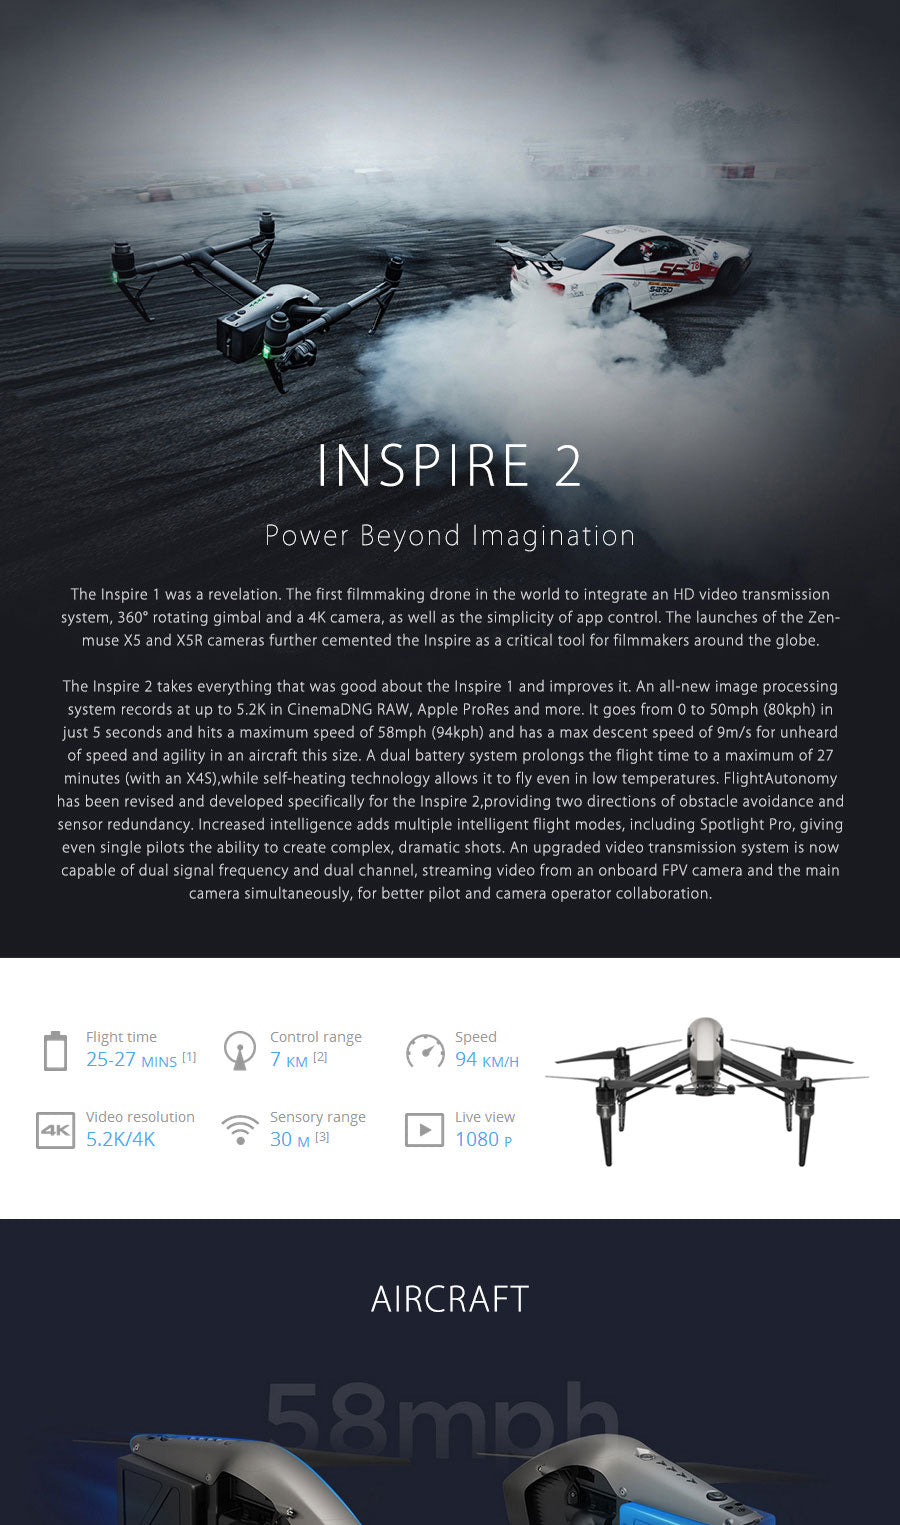 Dji Inspire 2 Drone Rc Quadcopter With Zenmuse X5s X4s 52k Or Fpv 4k Videospotlight Prointelligent Flight